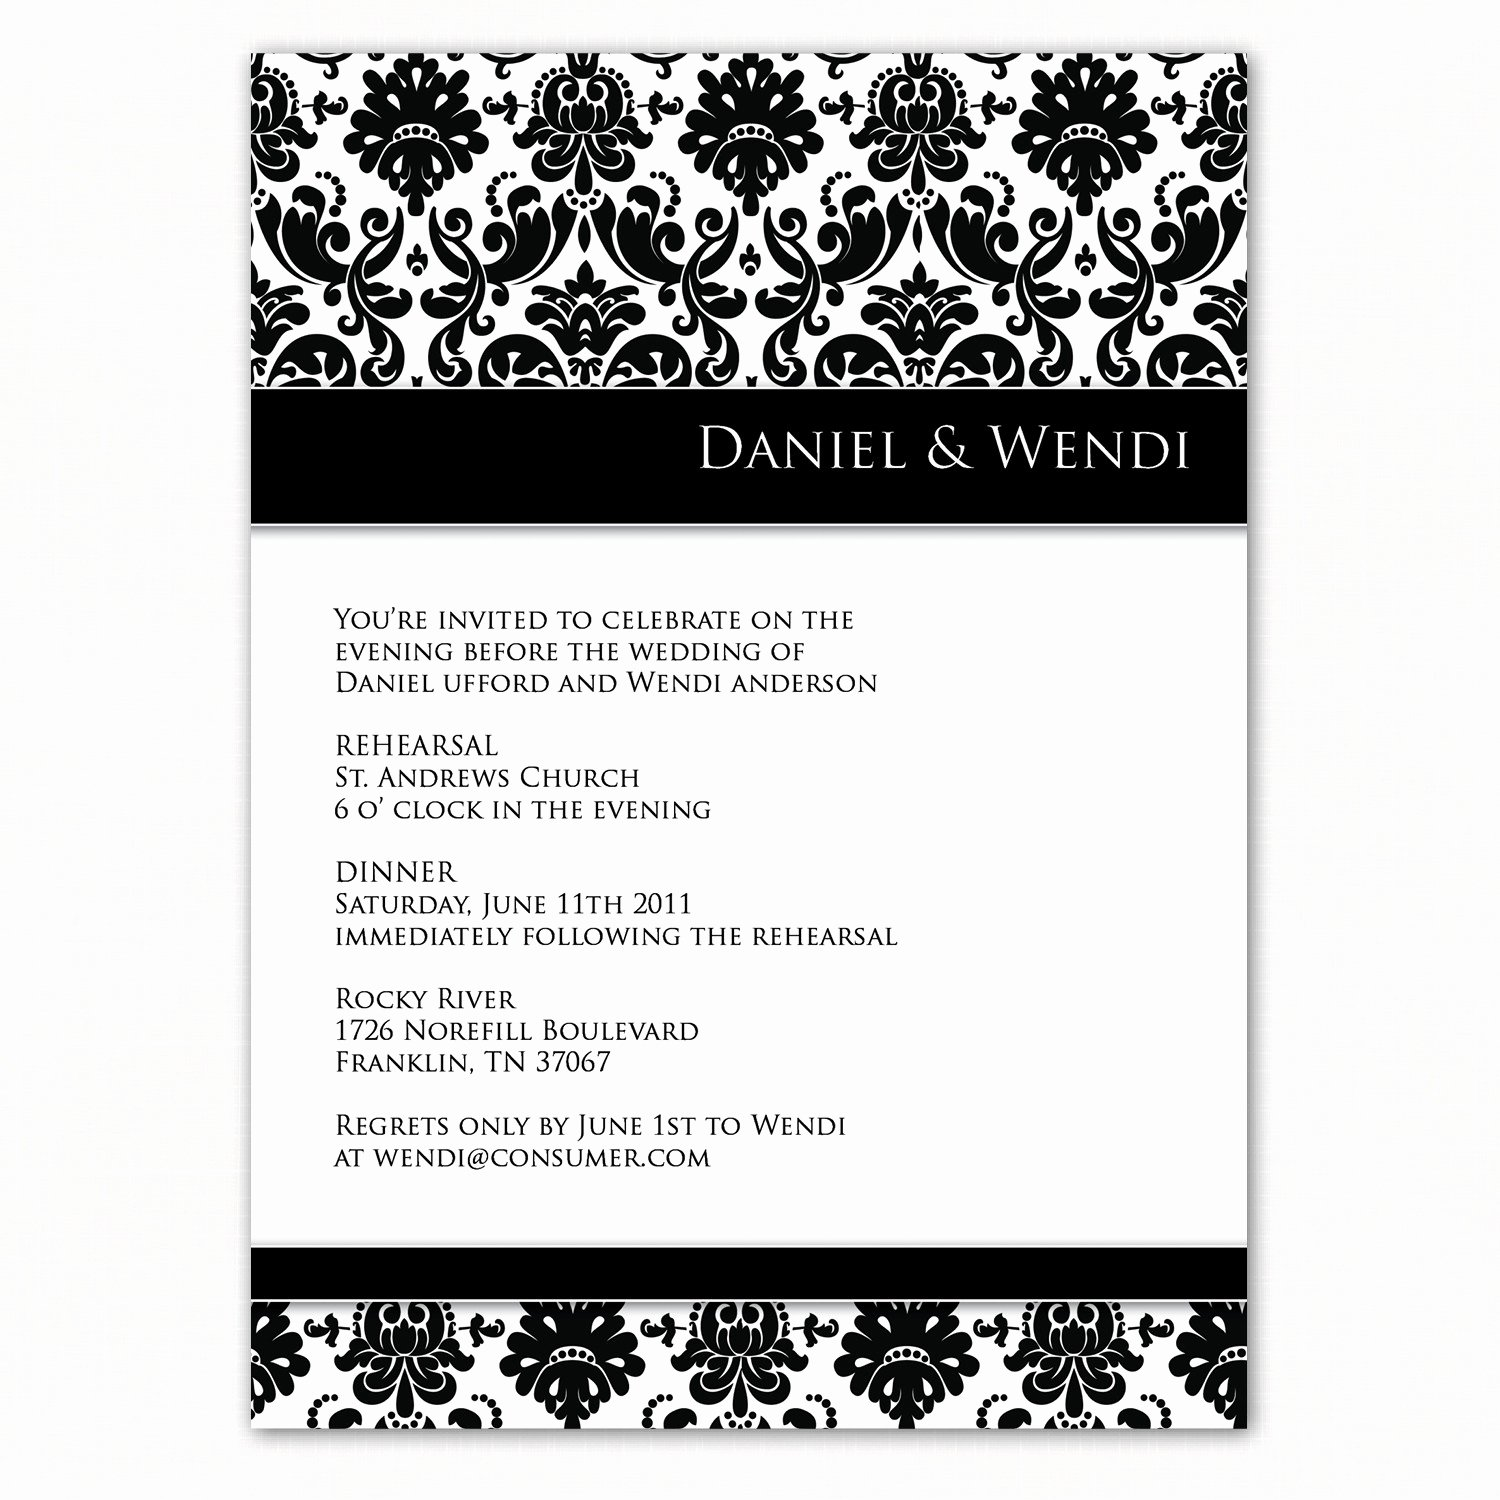 Rehearsal Dinner Invitation Template Inspirational Dinner Invite Quotes Quotesgram